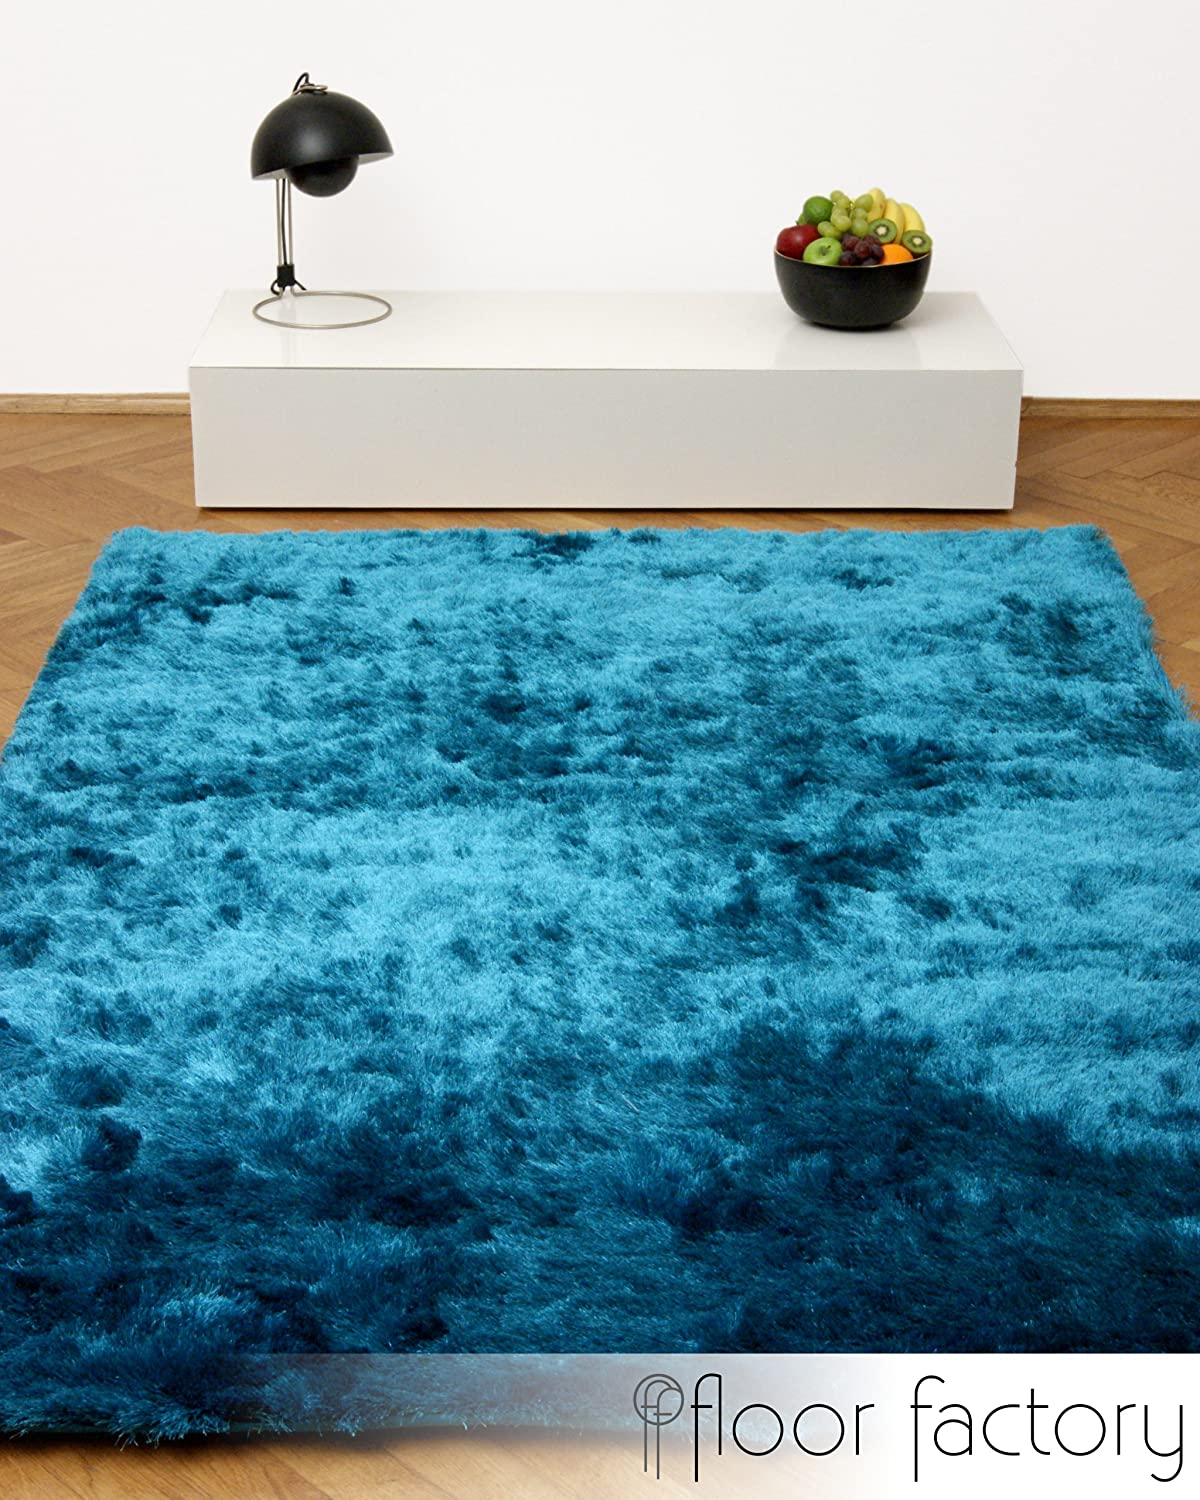 Awesome tapis marron et bleu images awesome interior for Tapis bleu turquoise